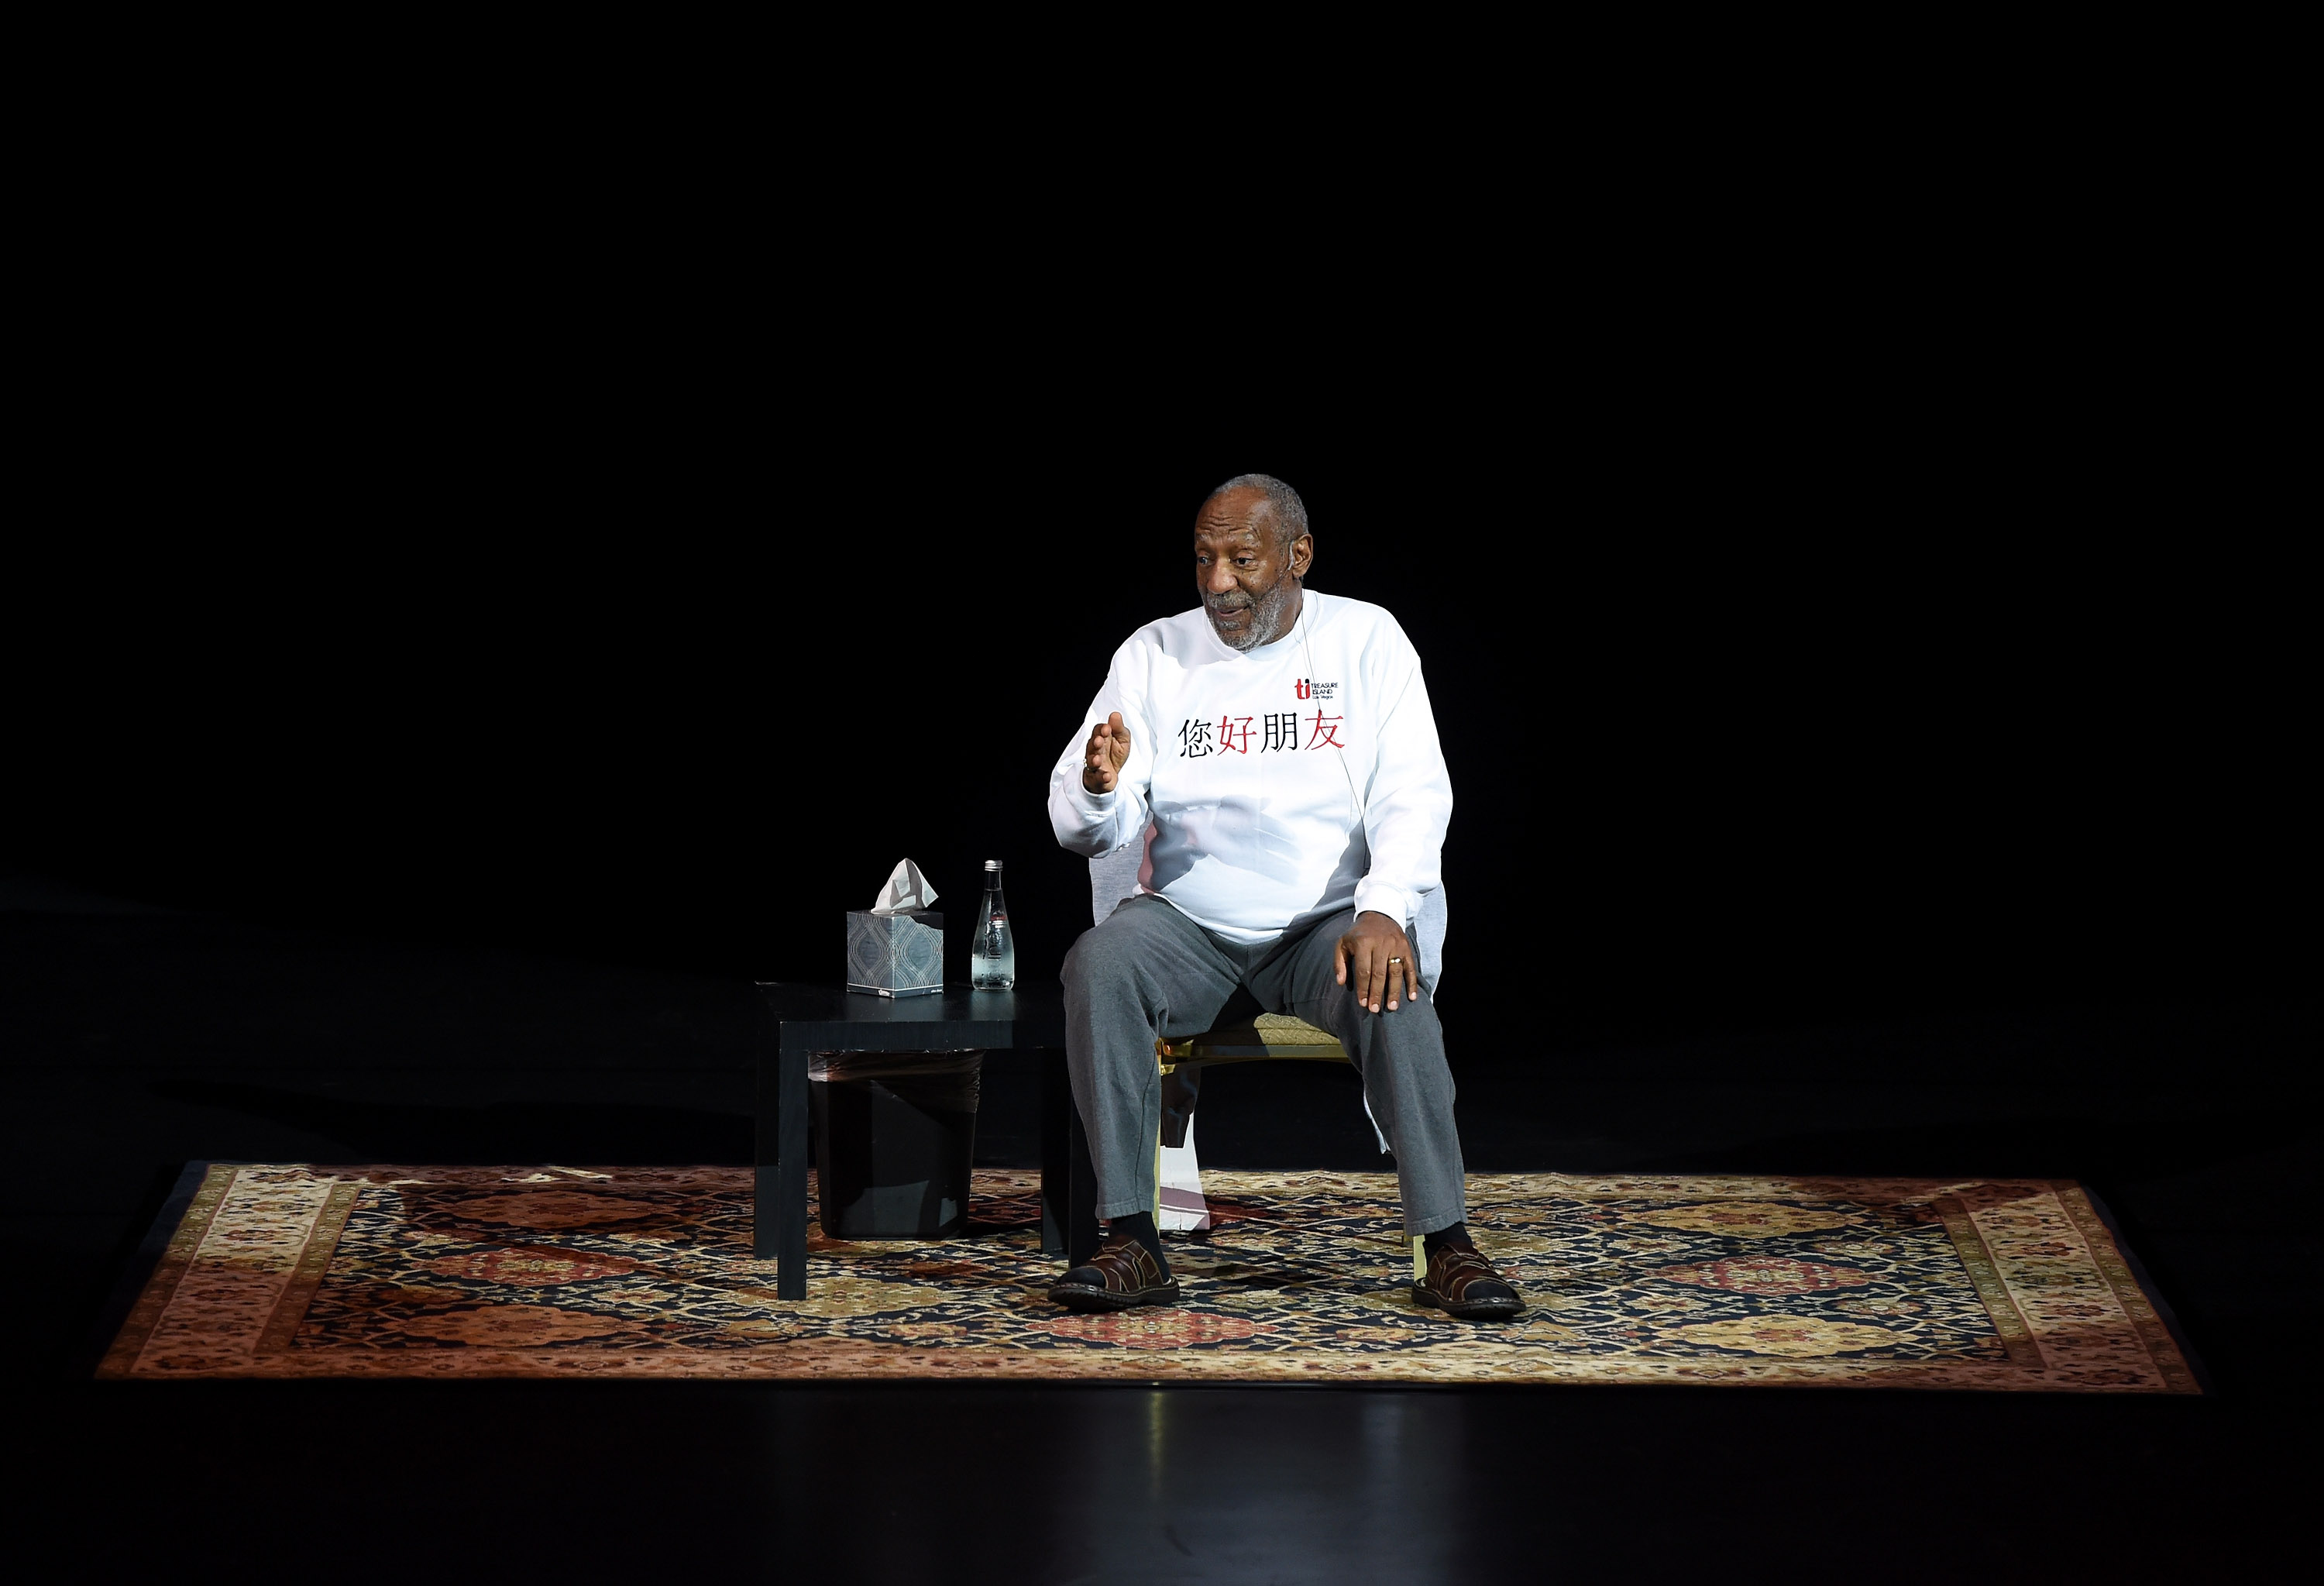 Comedian/actor Bill Cosby performs at the Treasure Island Hotel & Casino on Sept. 26, 2014 in Las Vegas, Nevada.